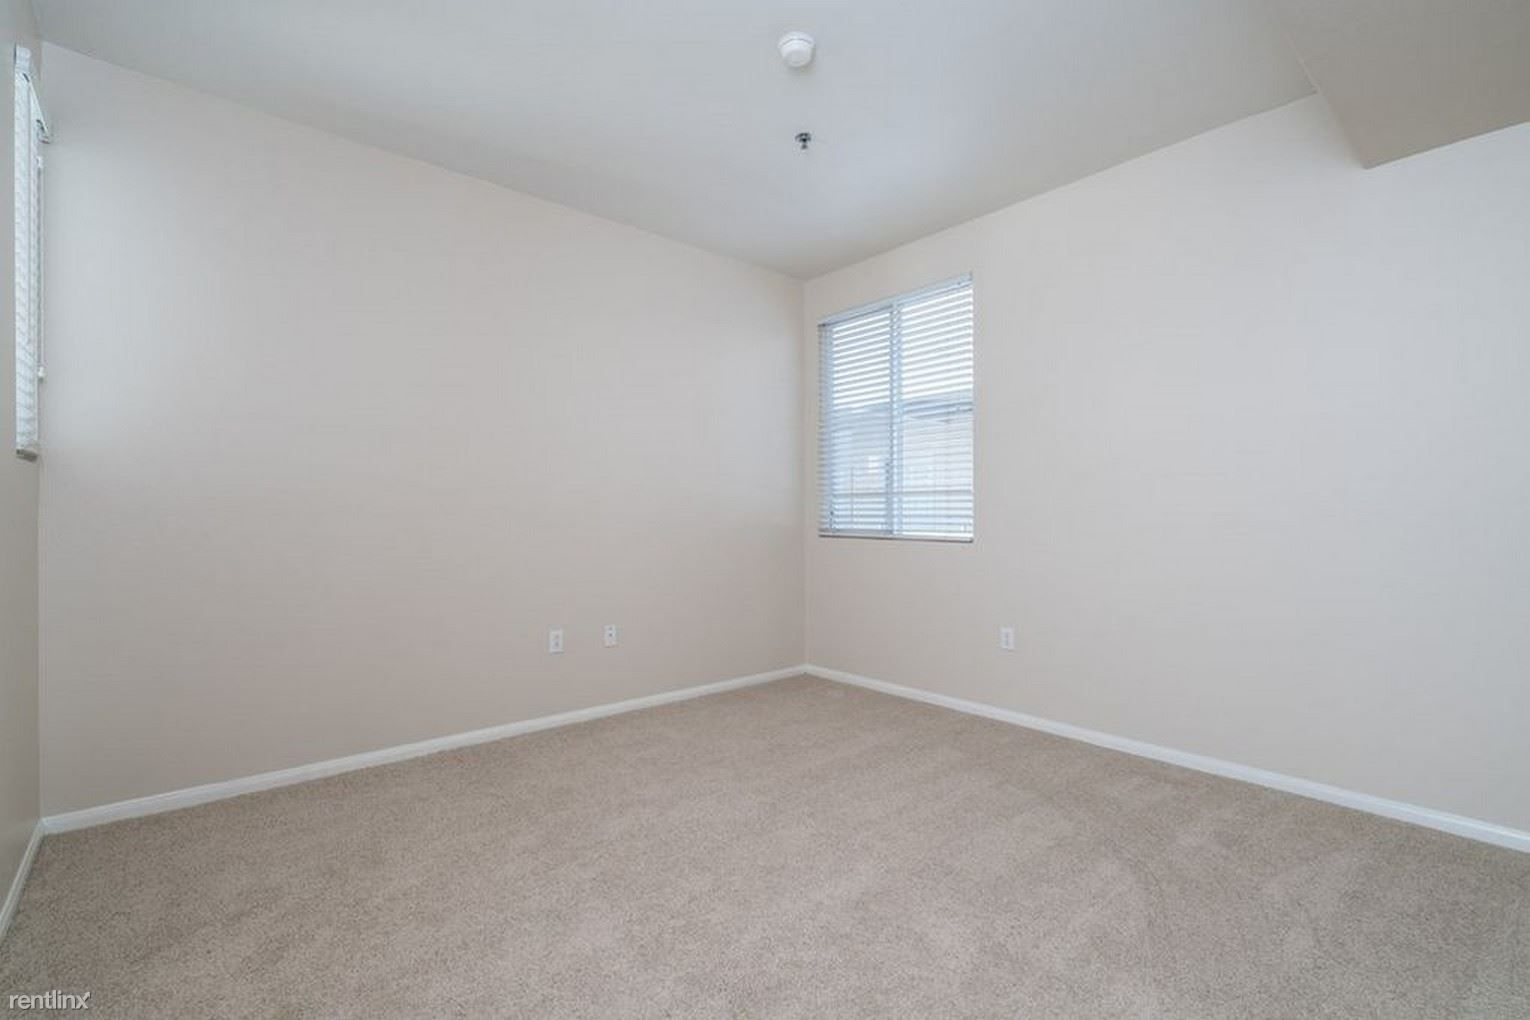 1643 6th Ave for rent